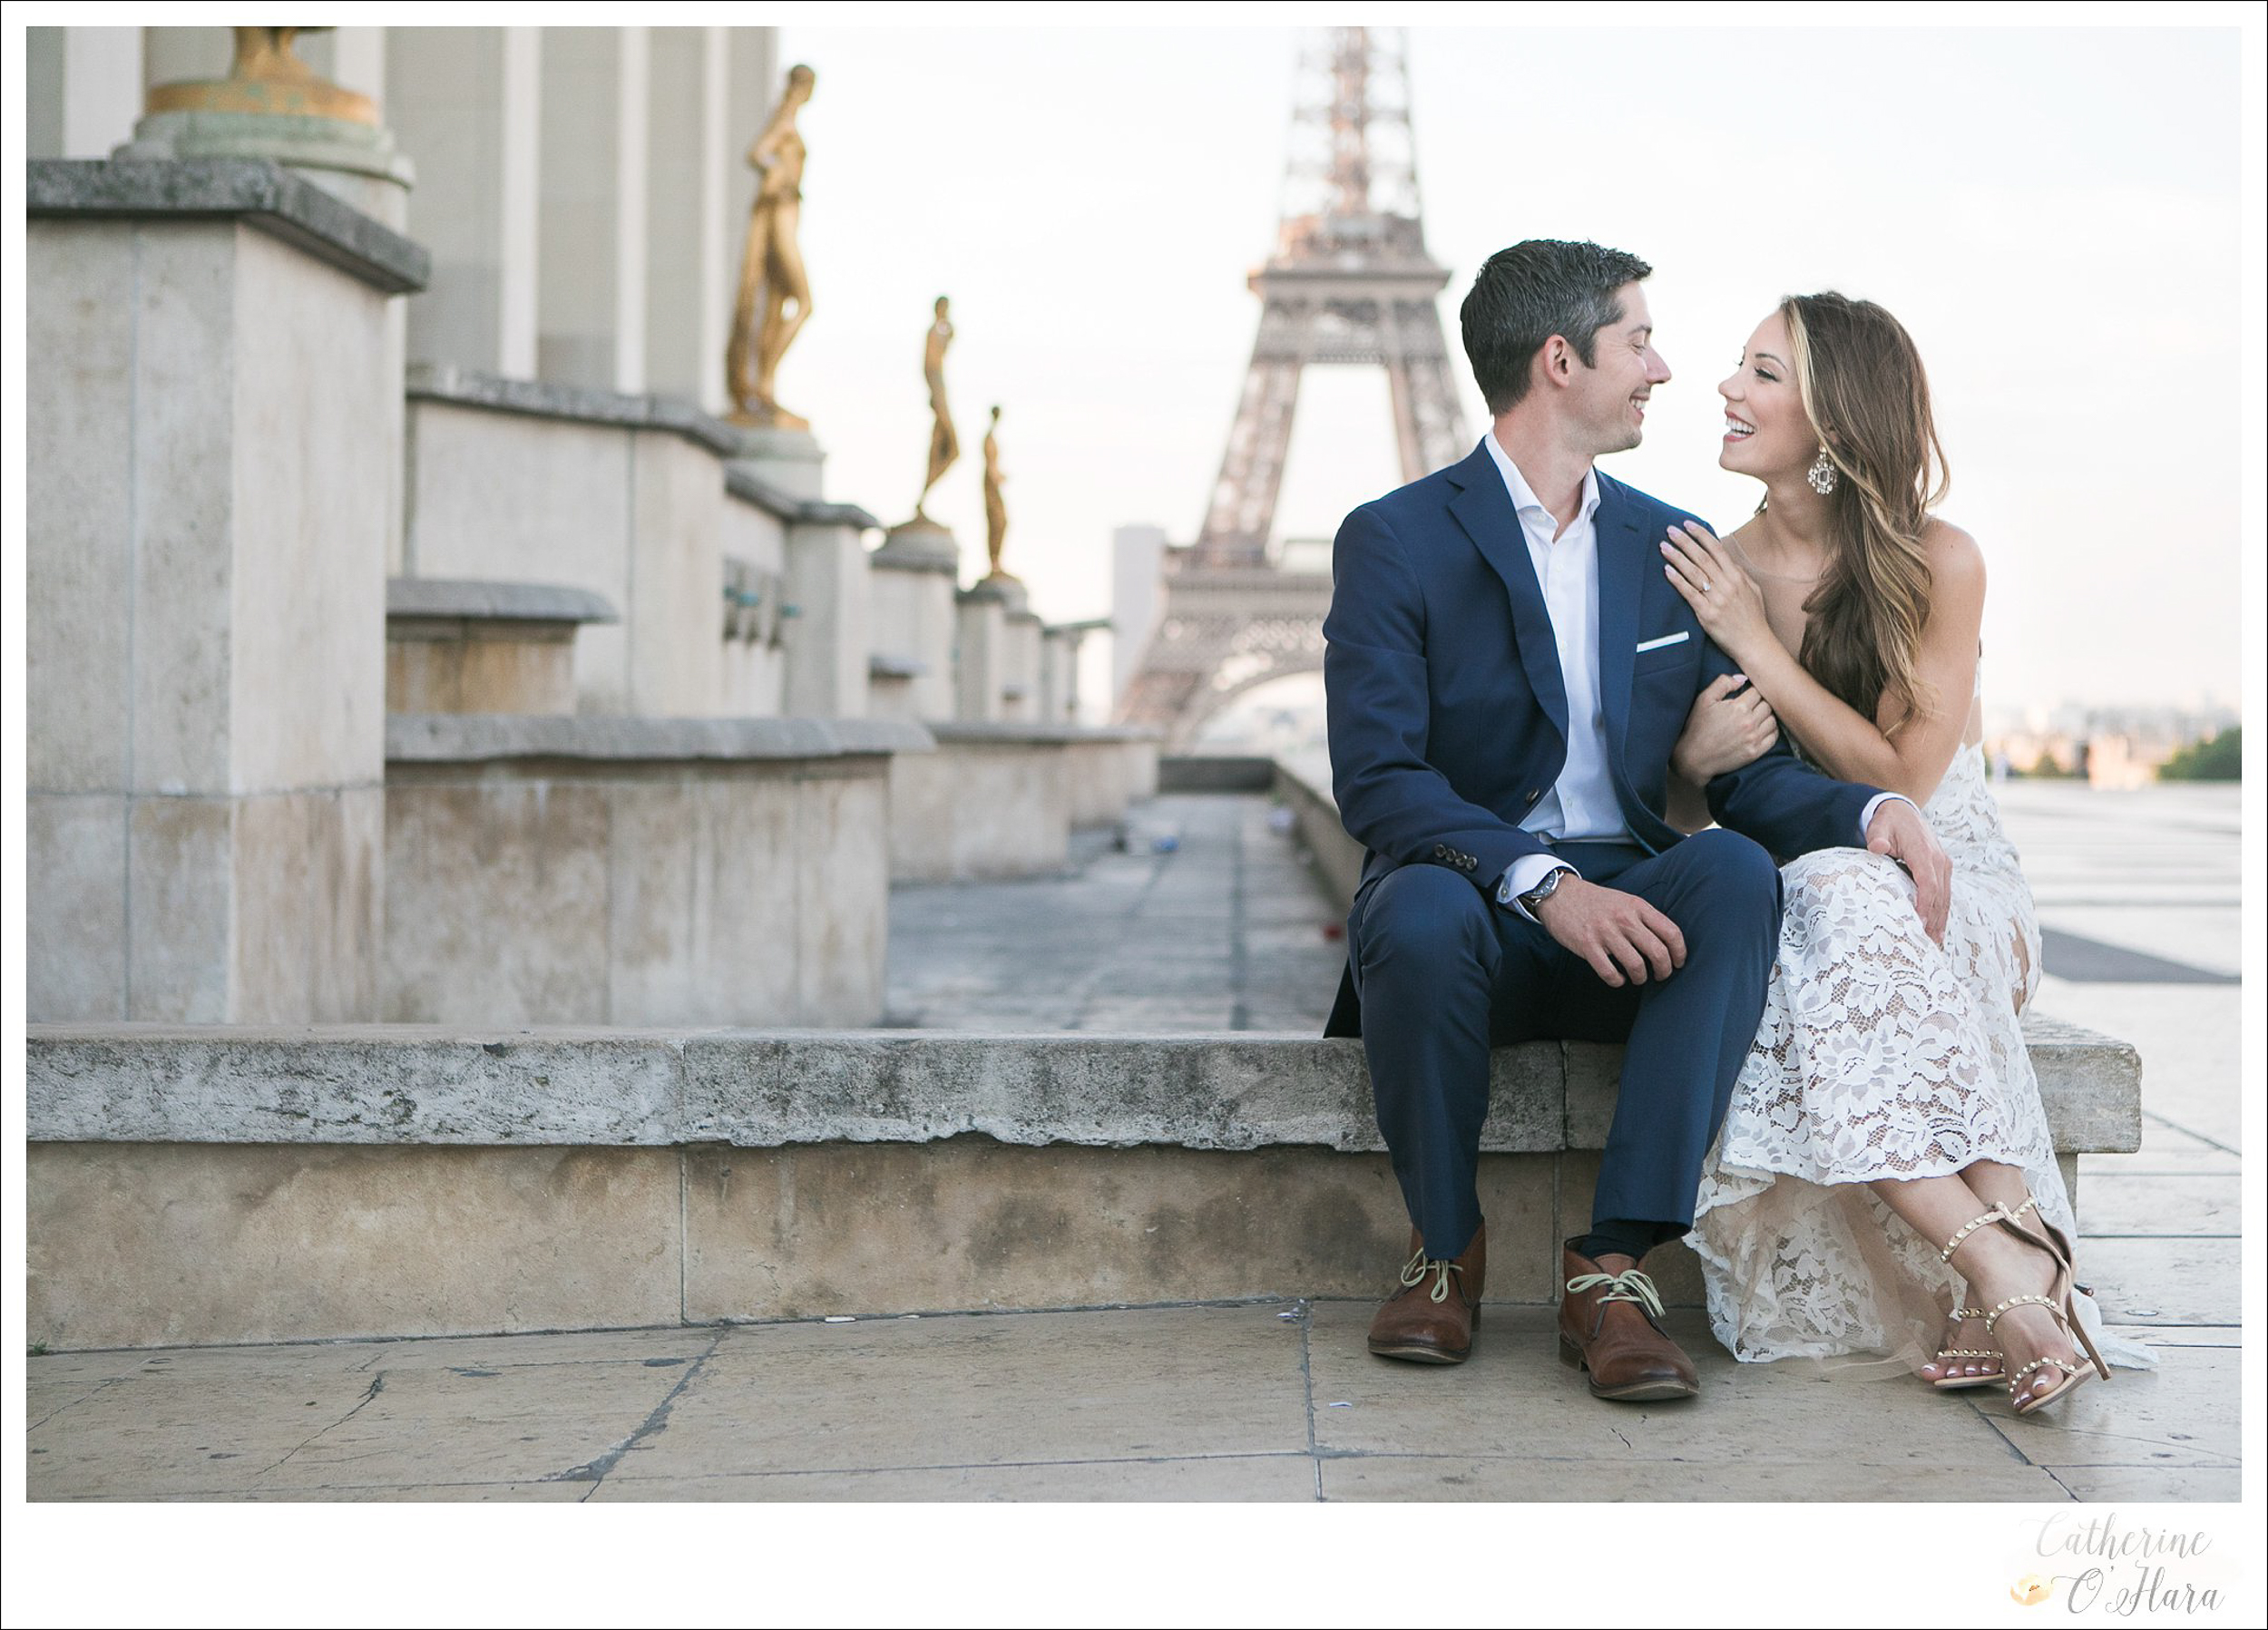 paris france engagement proposal photographer-12.jpg